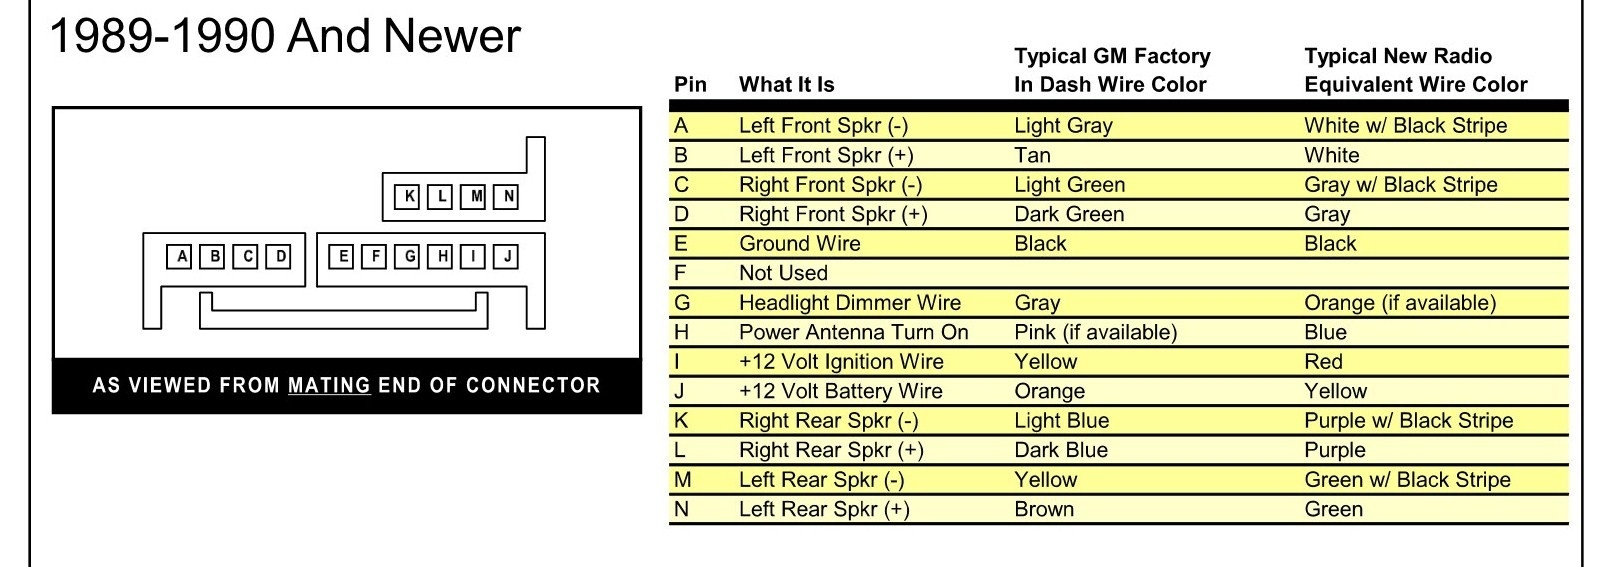 2005 chevy impala radio wiring diagram Download-2005 Chevy Silverado Radio Wiring Diagram For Printable 2008 At Within Harness Gm And 7-m